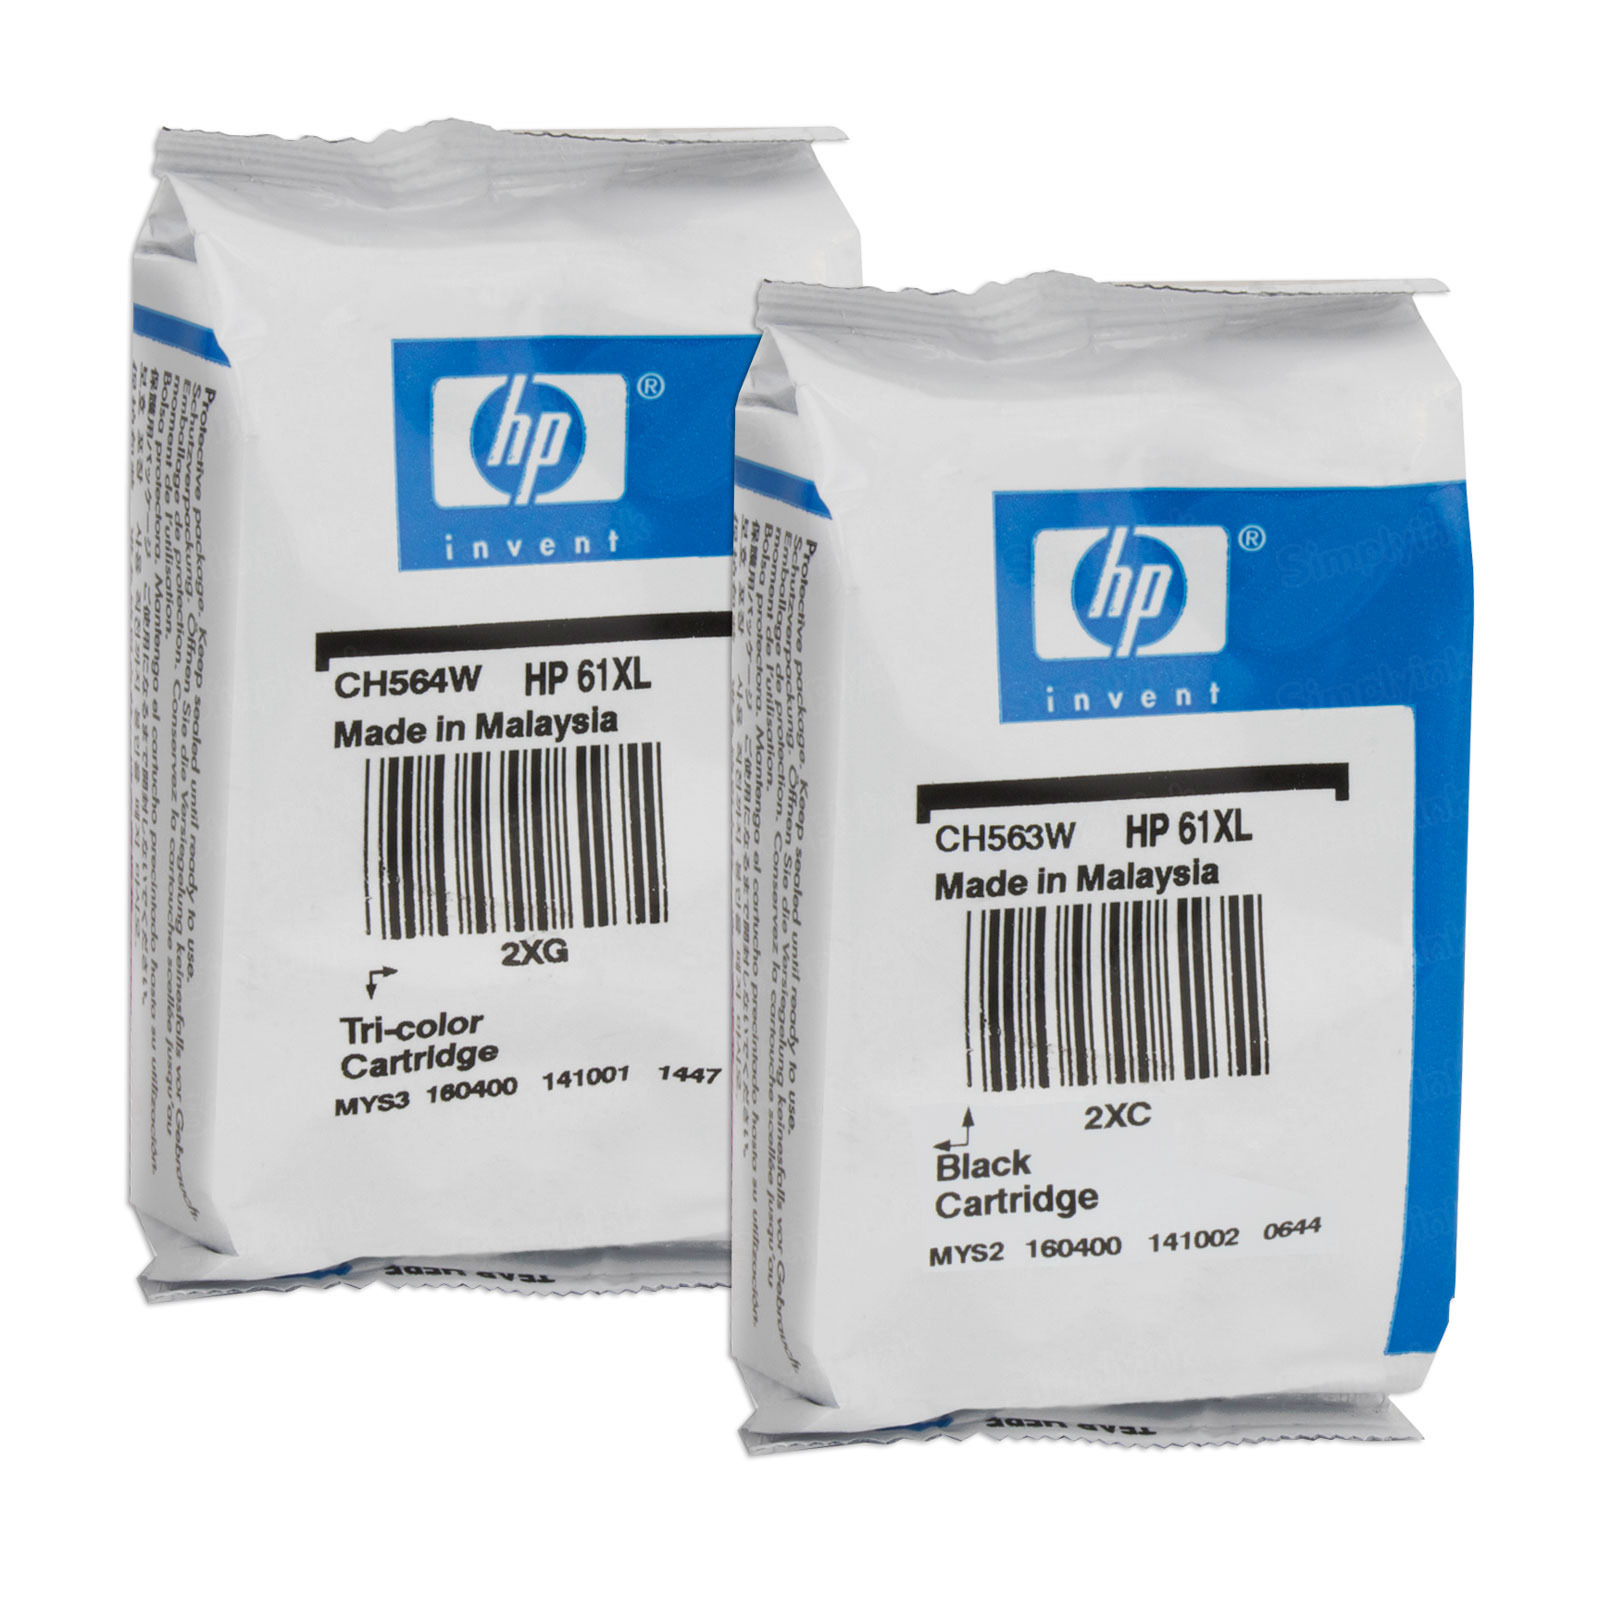 HP 61XL Black & Color Original Ink Cartridge Set - Foil Wrapped